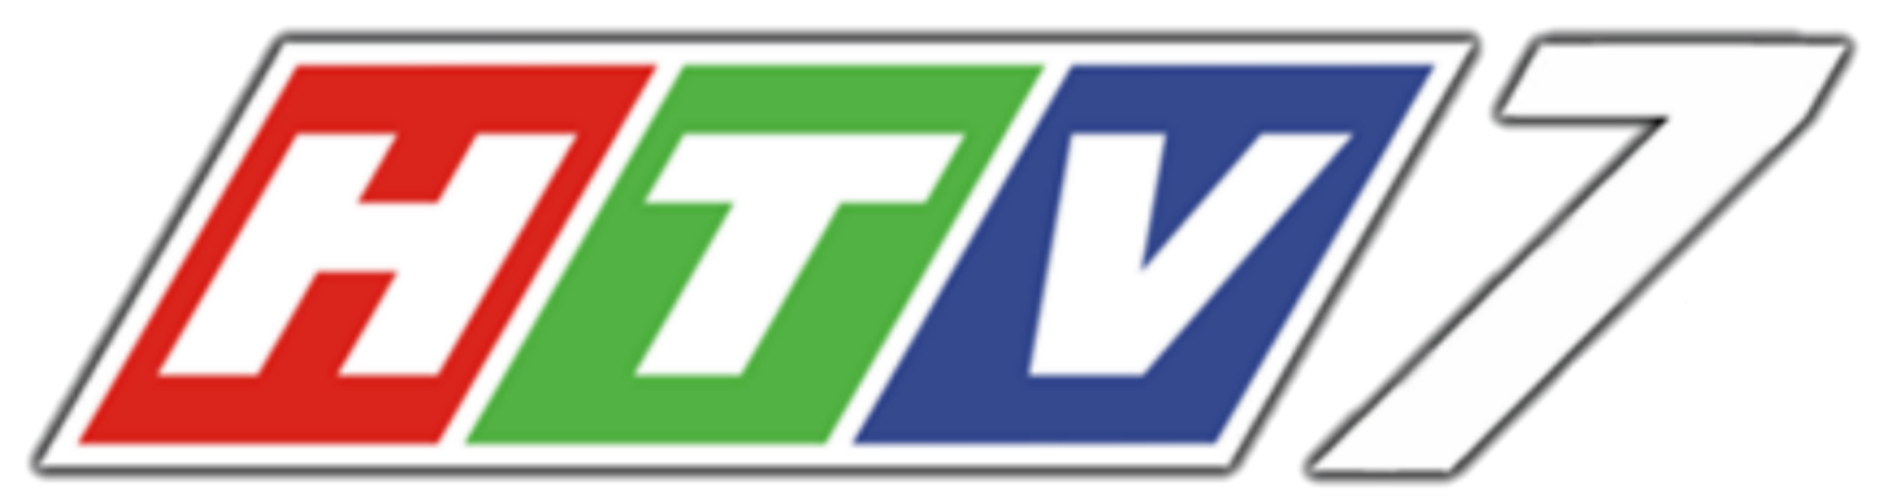 HTV7 (2017-present).png